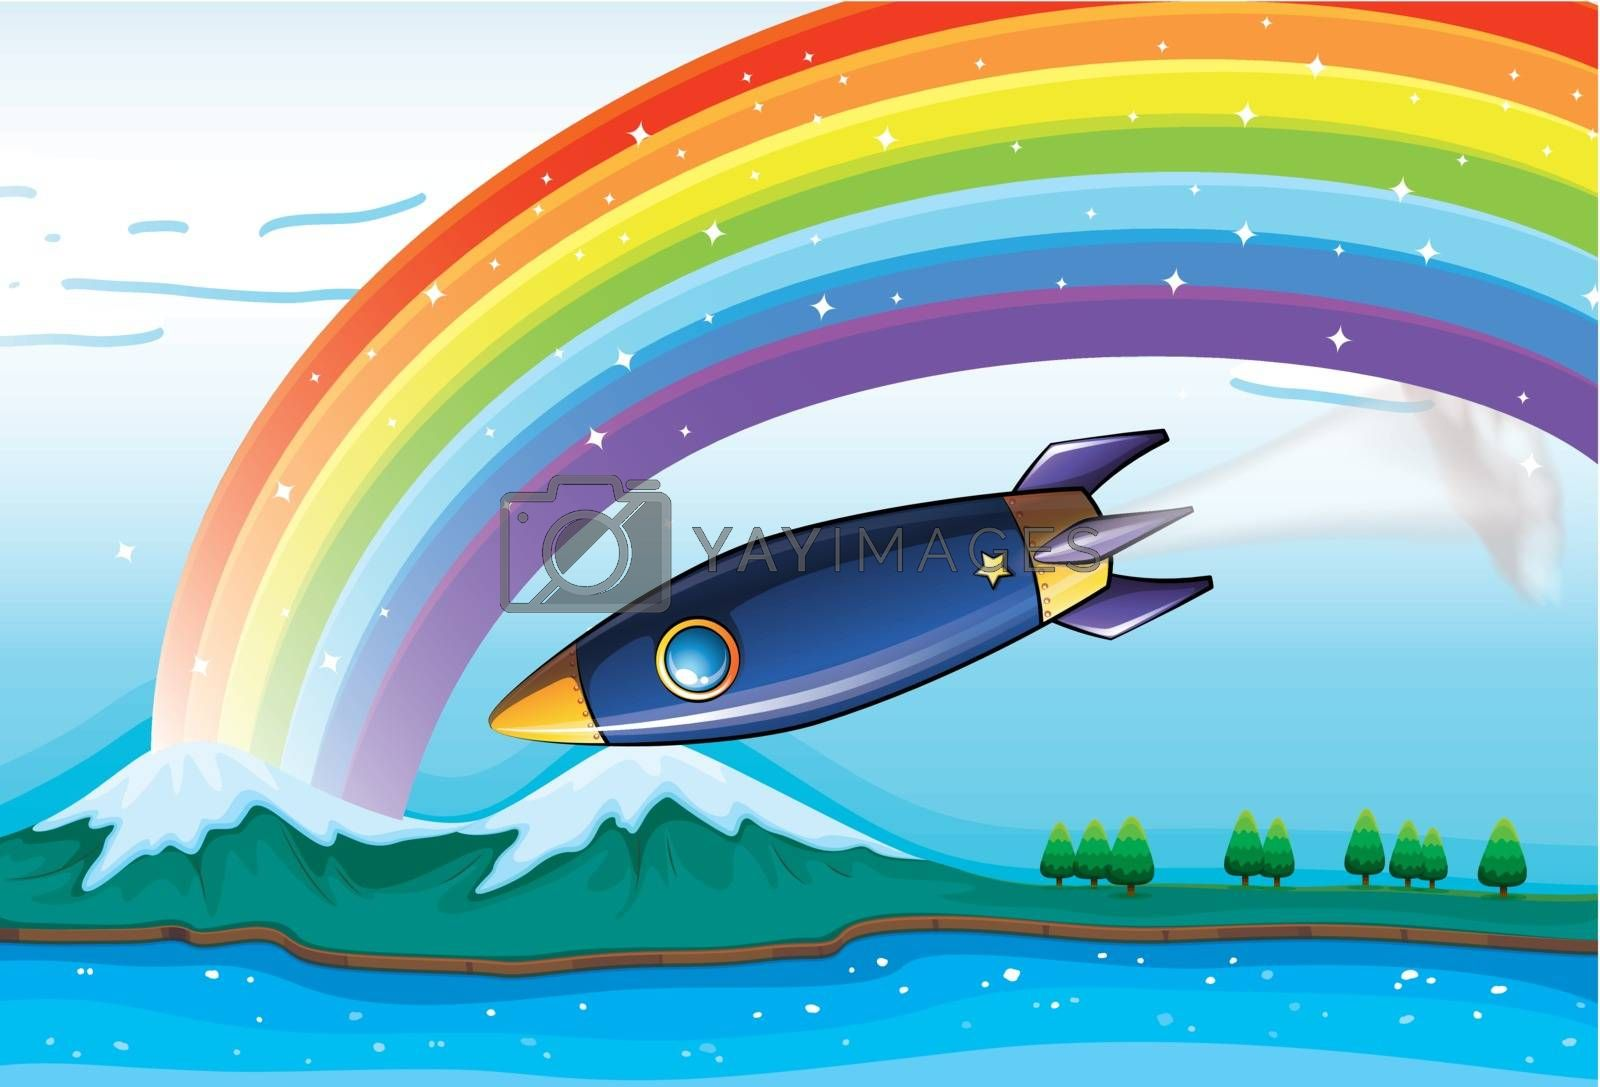 Illustration of a rainbow with sparkling stars and an aircraft